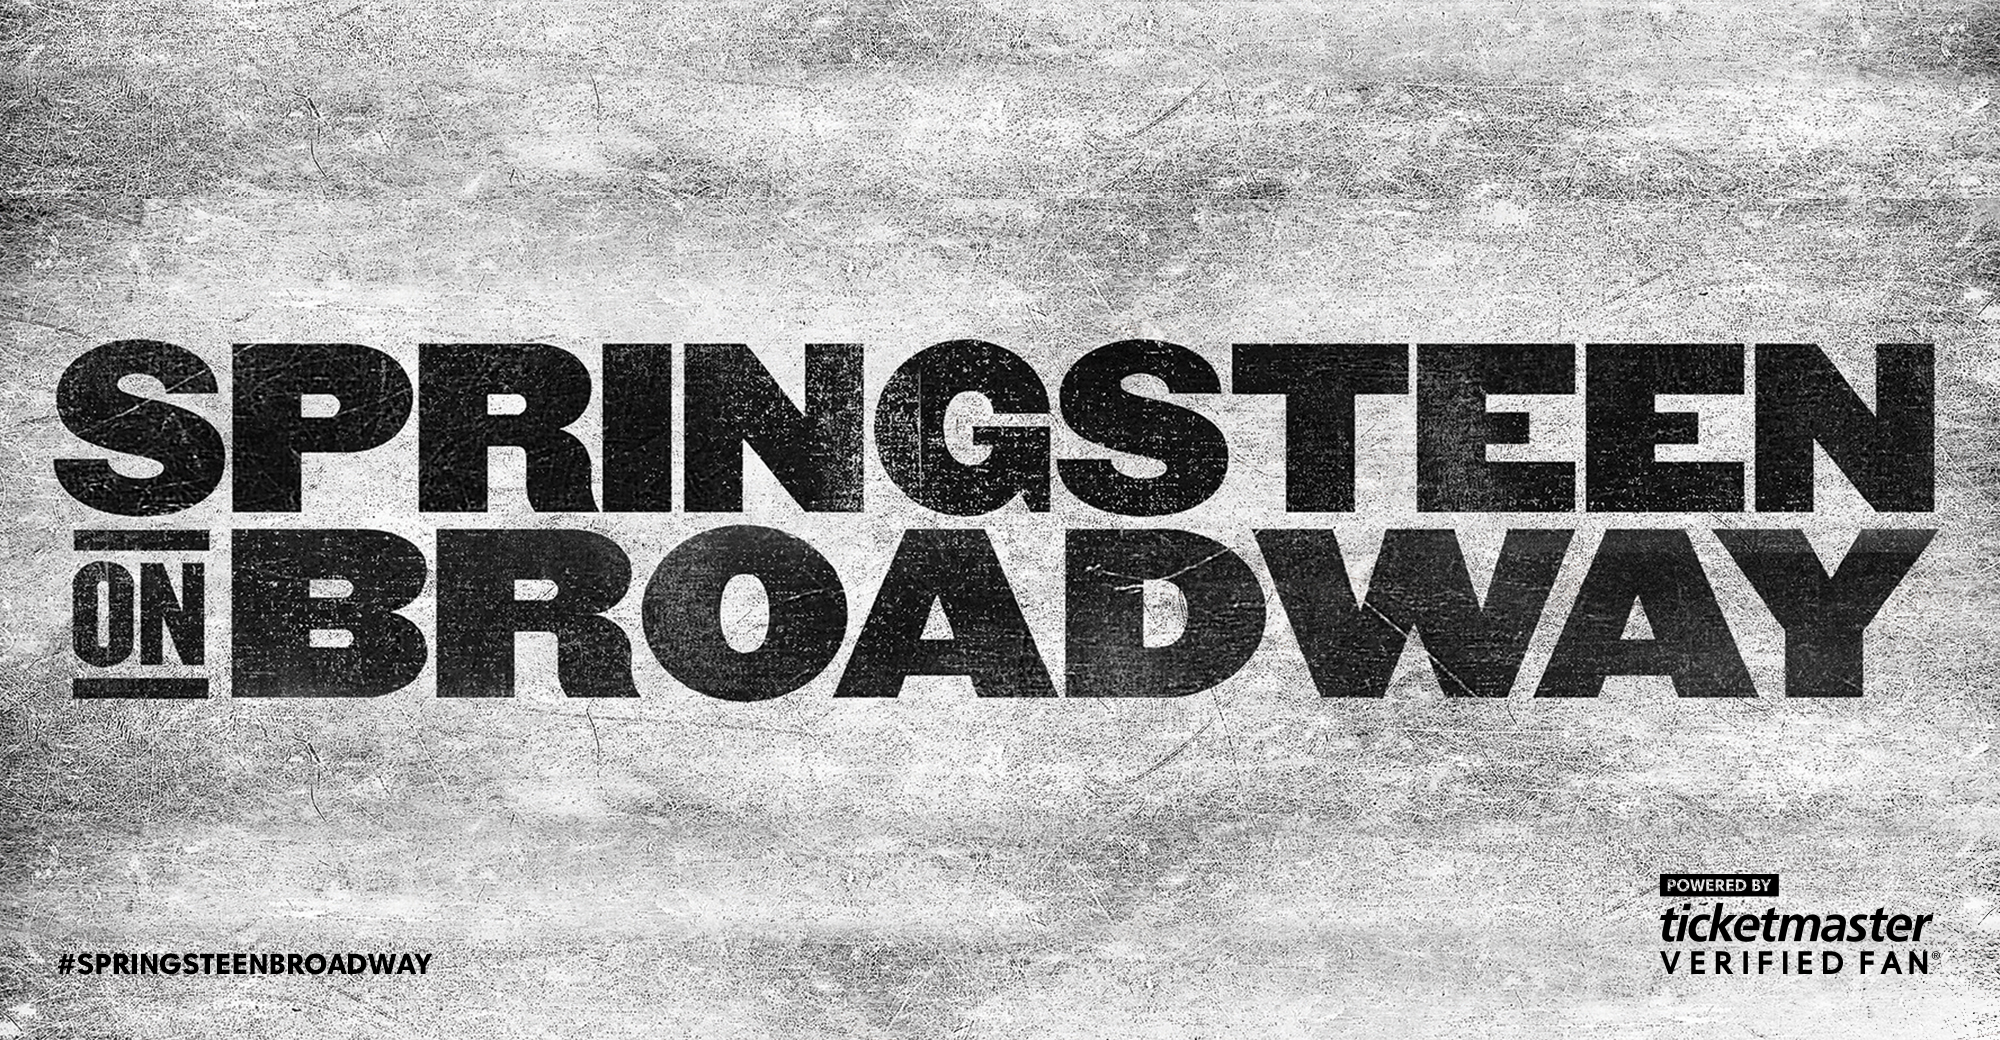 Springsteen on Broadway – Extended Run!